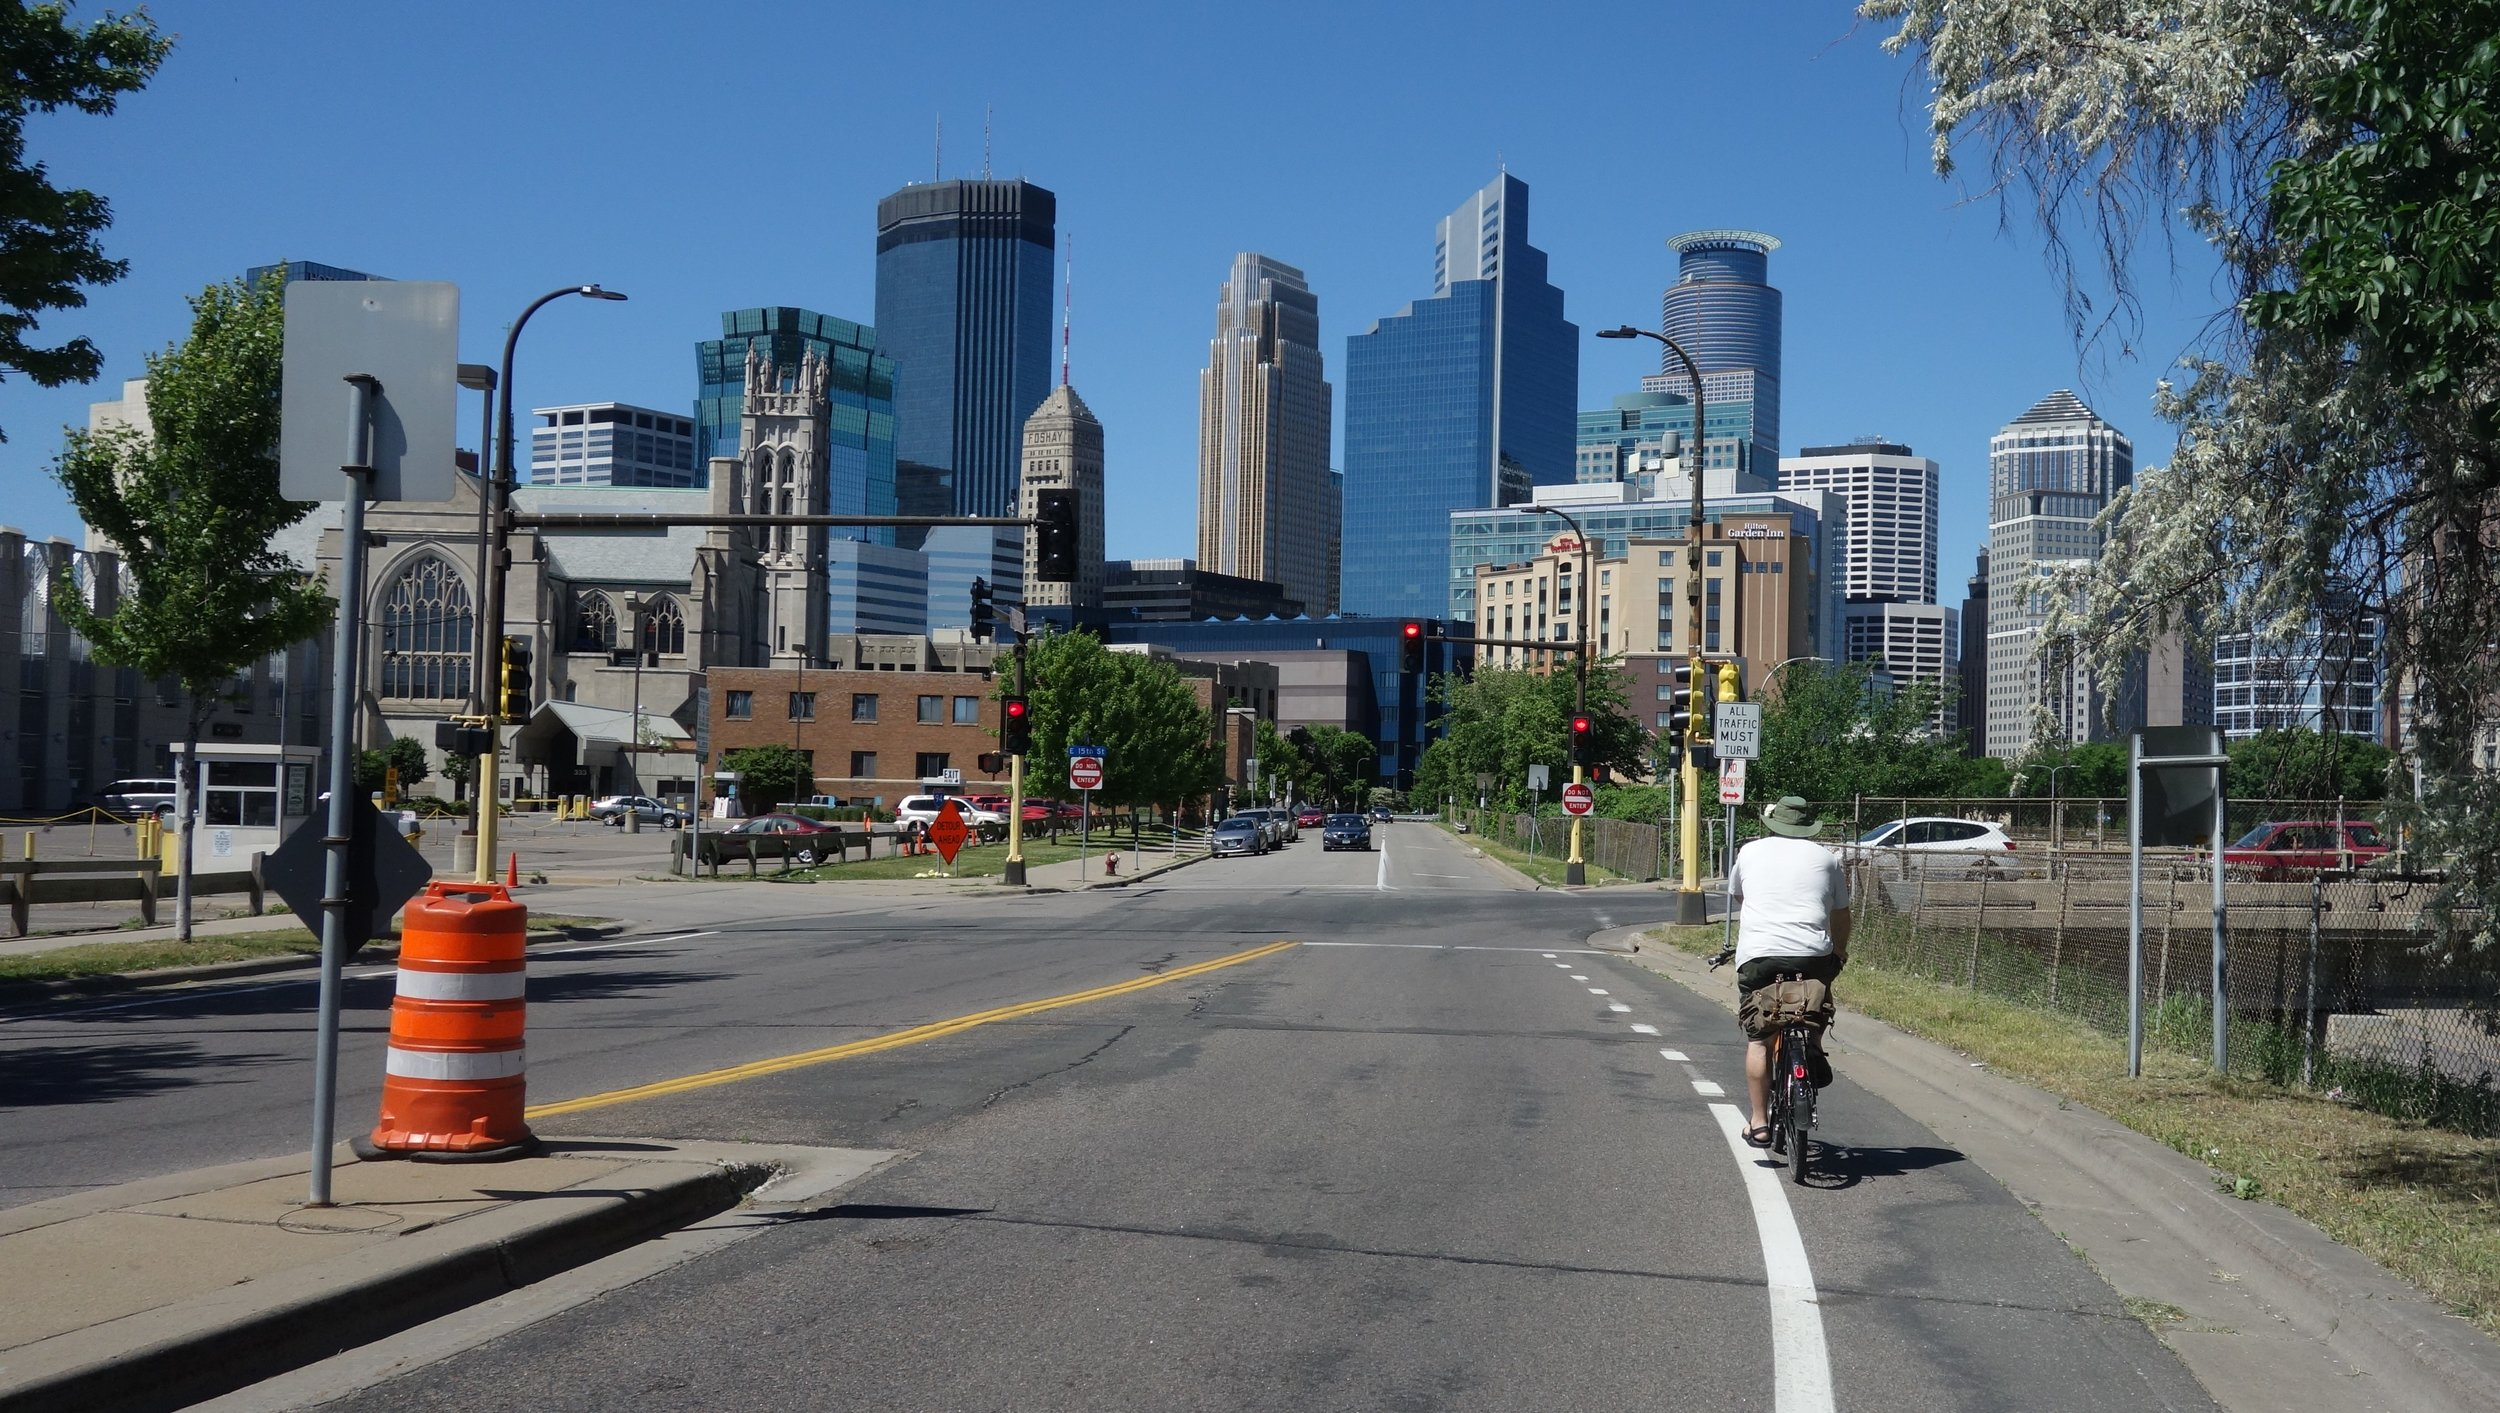 Chris leads me through the Cities, letting me enjoy the bike routes without stress.